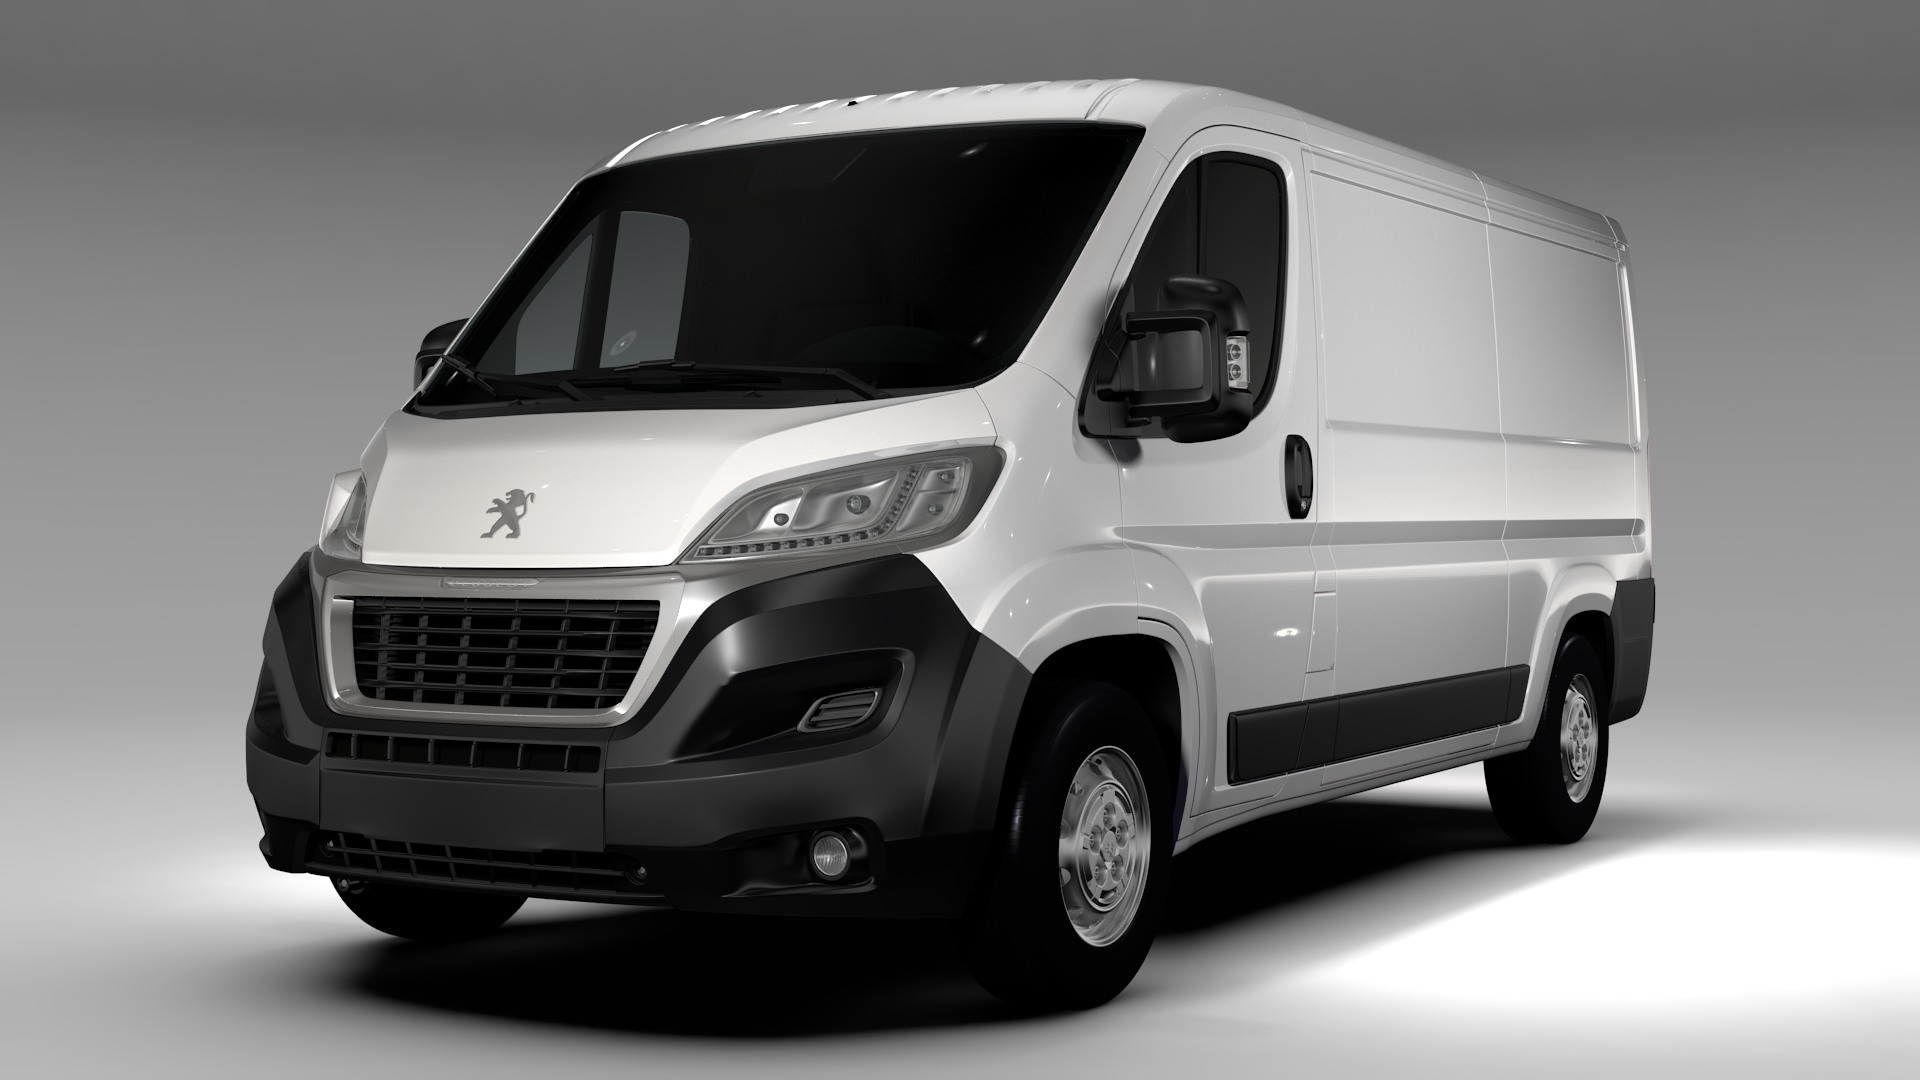 peugeot boxer van l2h1 2017 3d model. Black Bedroom Furniture Sets. Home Design Ideas